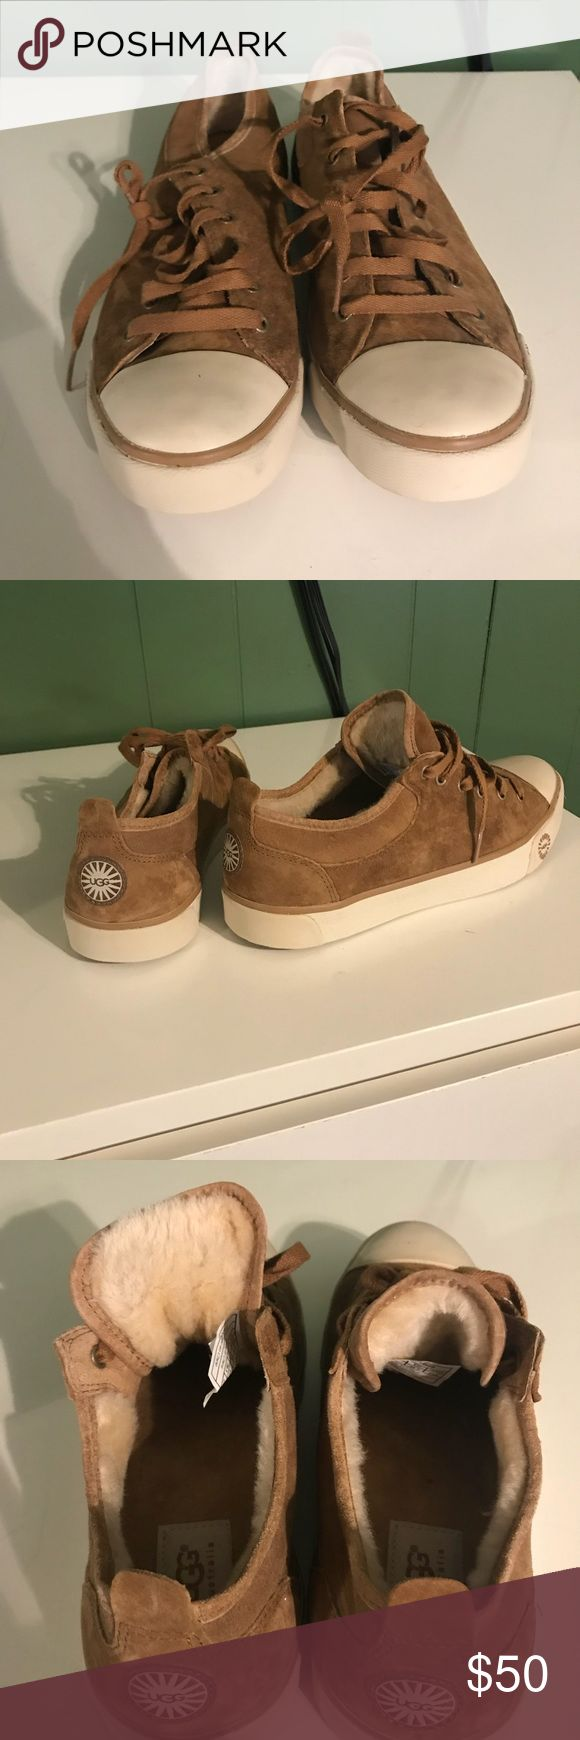 Authentic Ugg sneakers Tan suede UGG sneakers with fur lining. Women's size 8 1/2. Never worn. UGG Shoes Sneakers